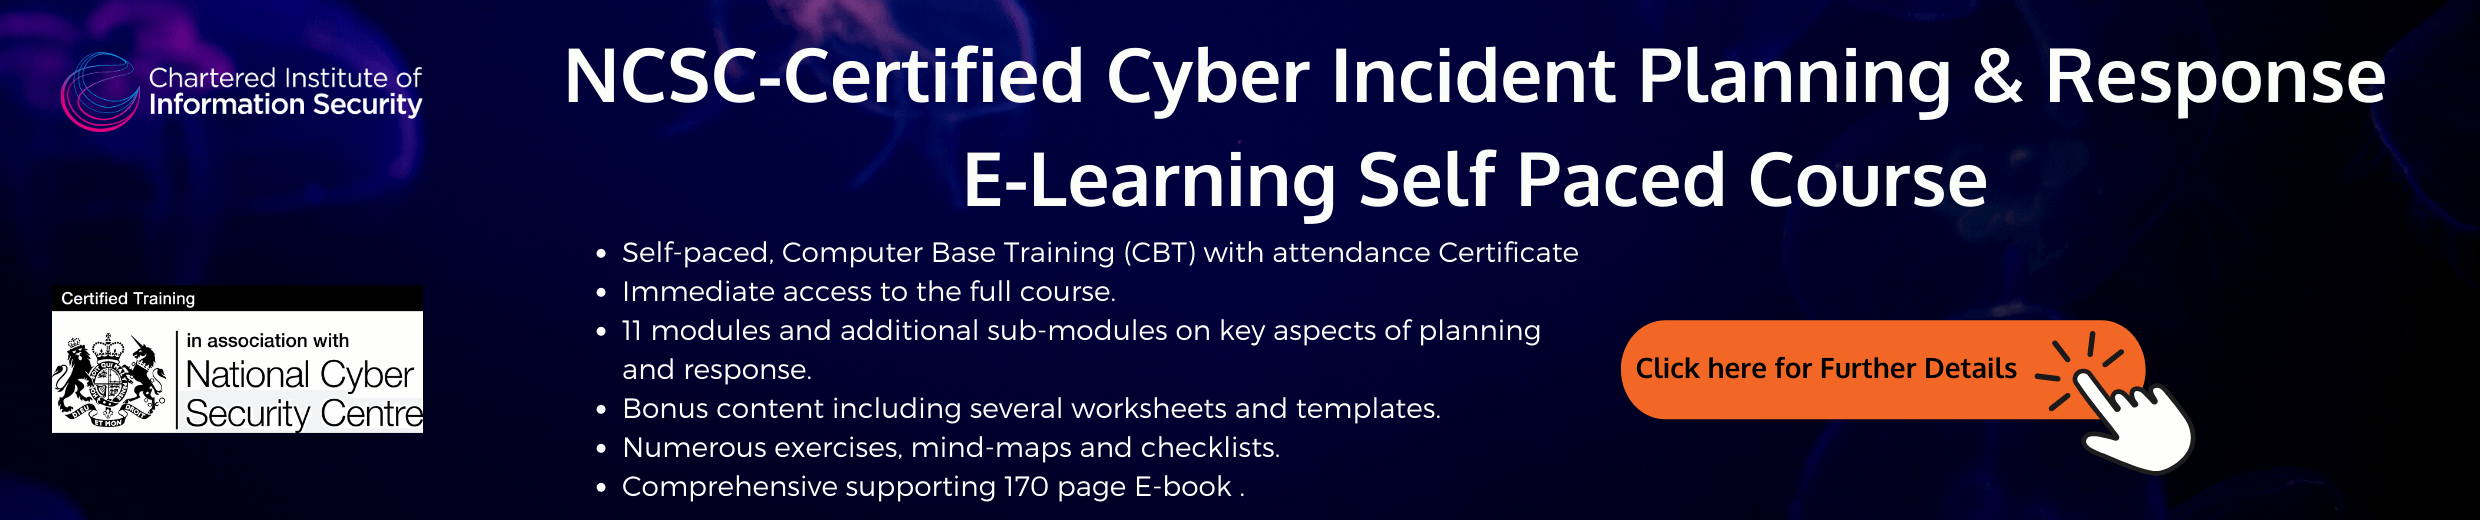 cybersecurity training course